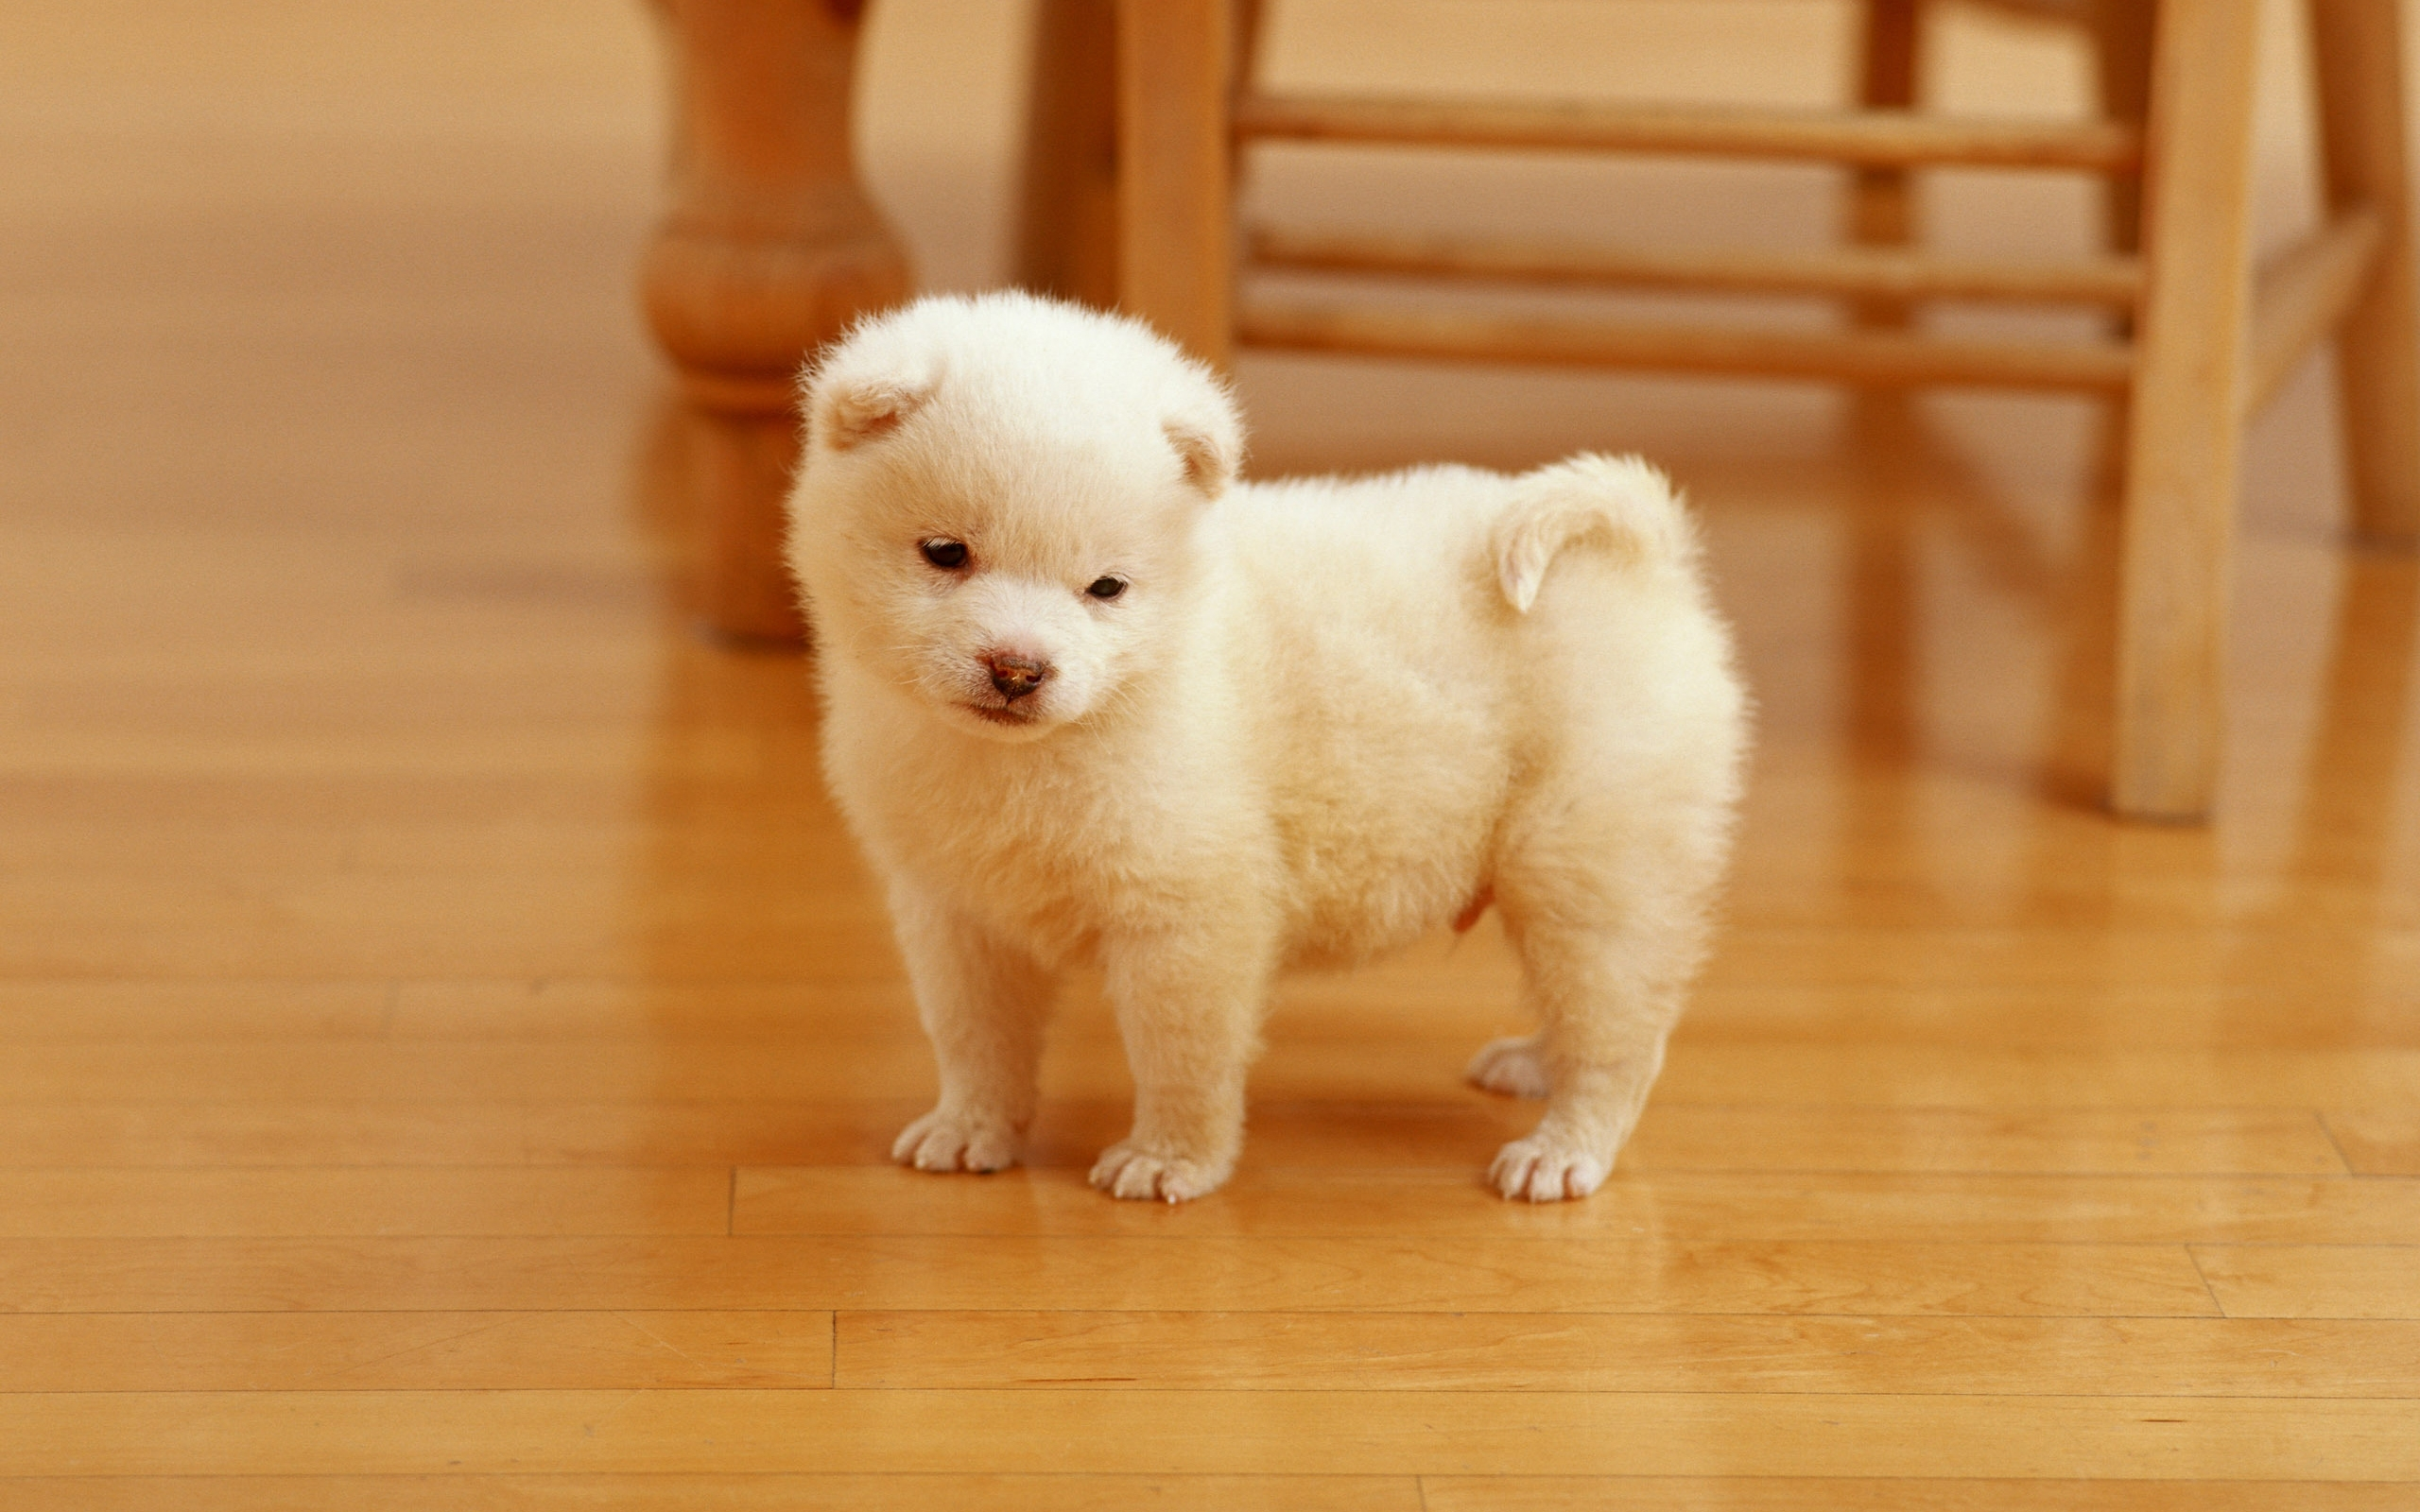 cute baby dog for background wallpaper high resolution photos very